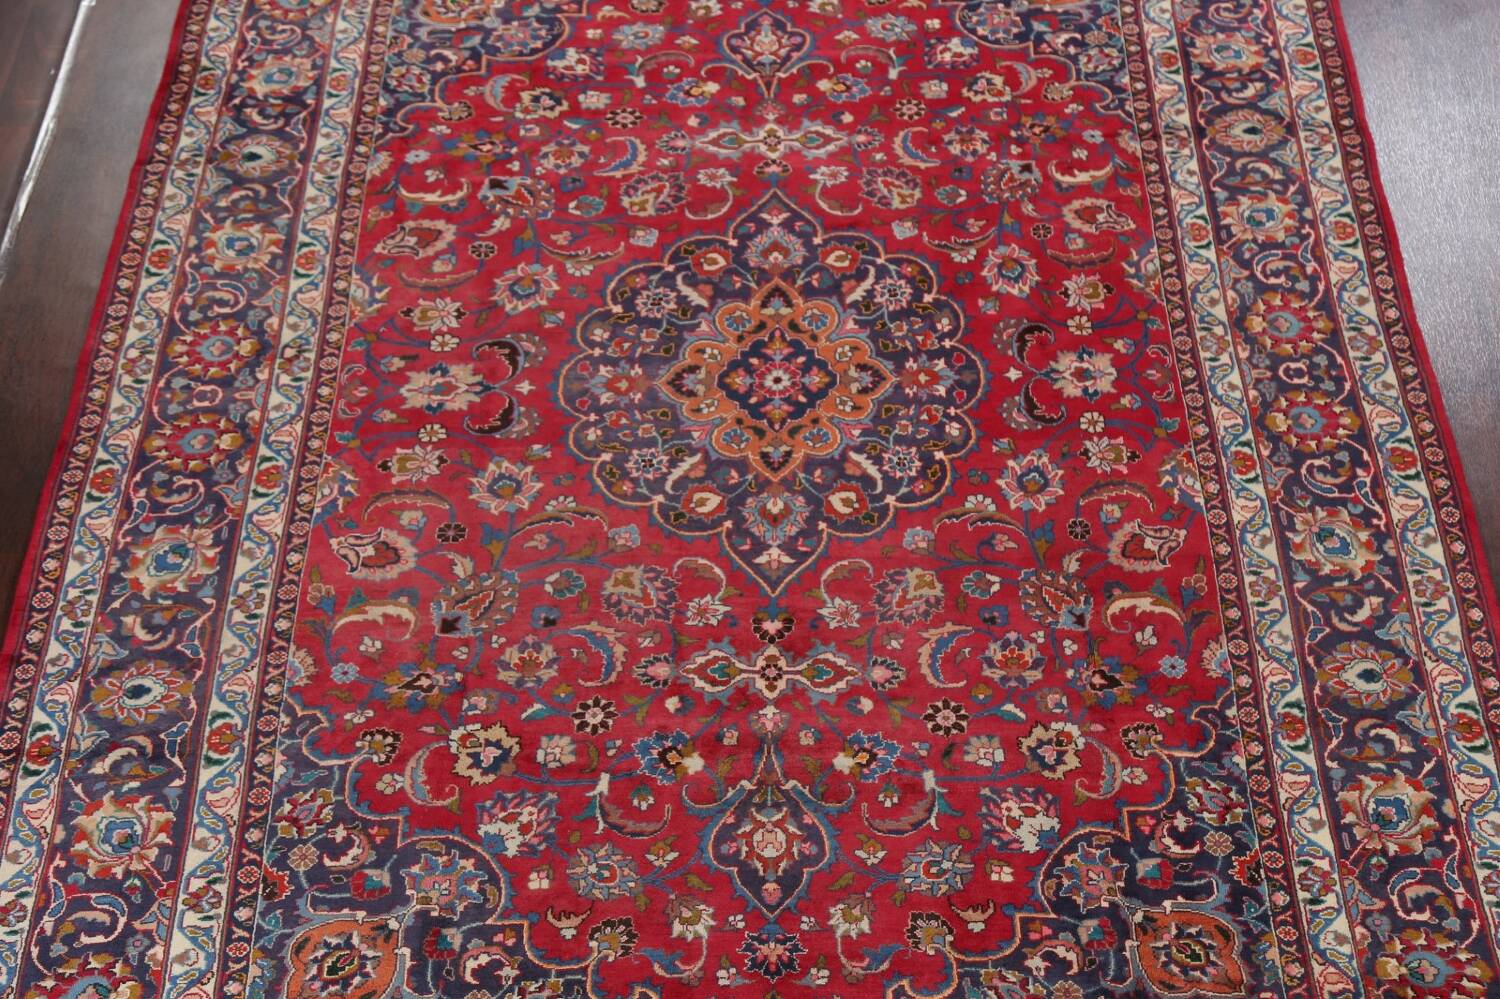 Vintage Floral Mashad Persian Red Area Rug 8x11 image 3